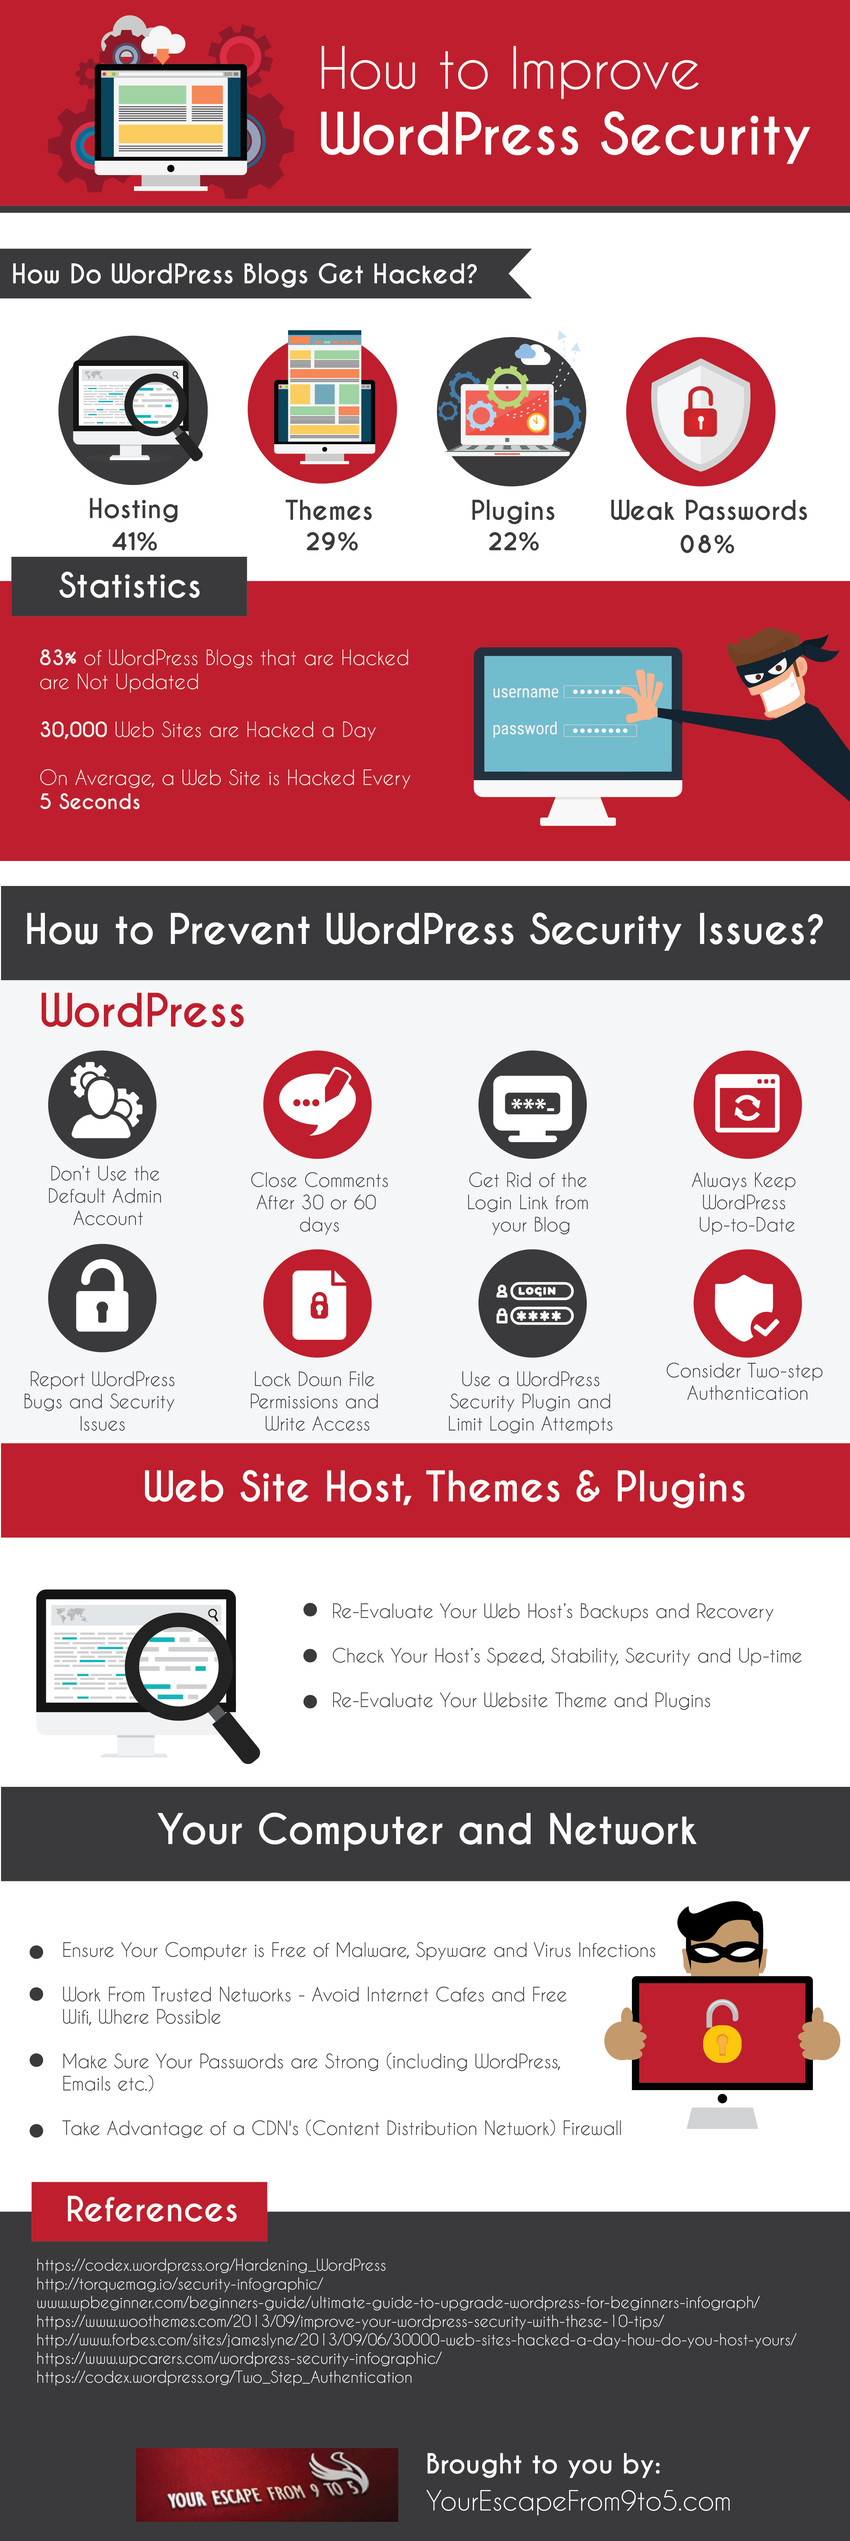 How to Improve WordPress Security by Your Escape From 9 to 5